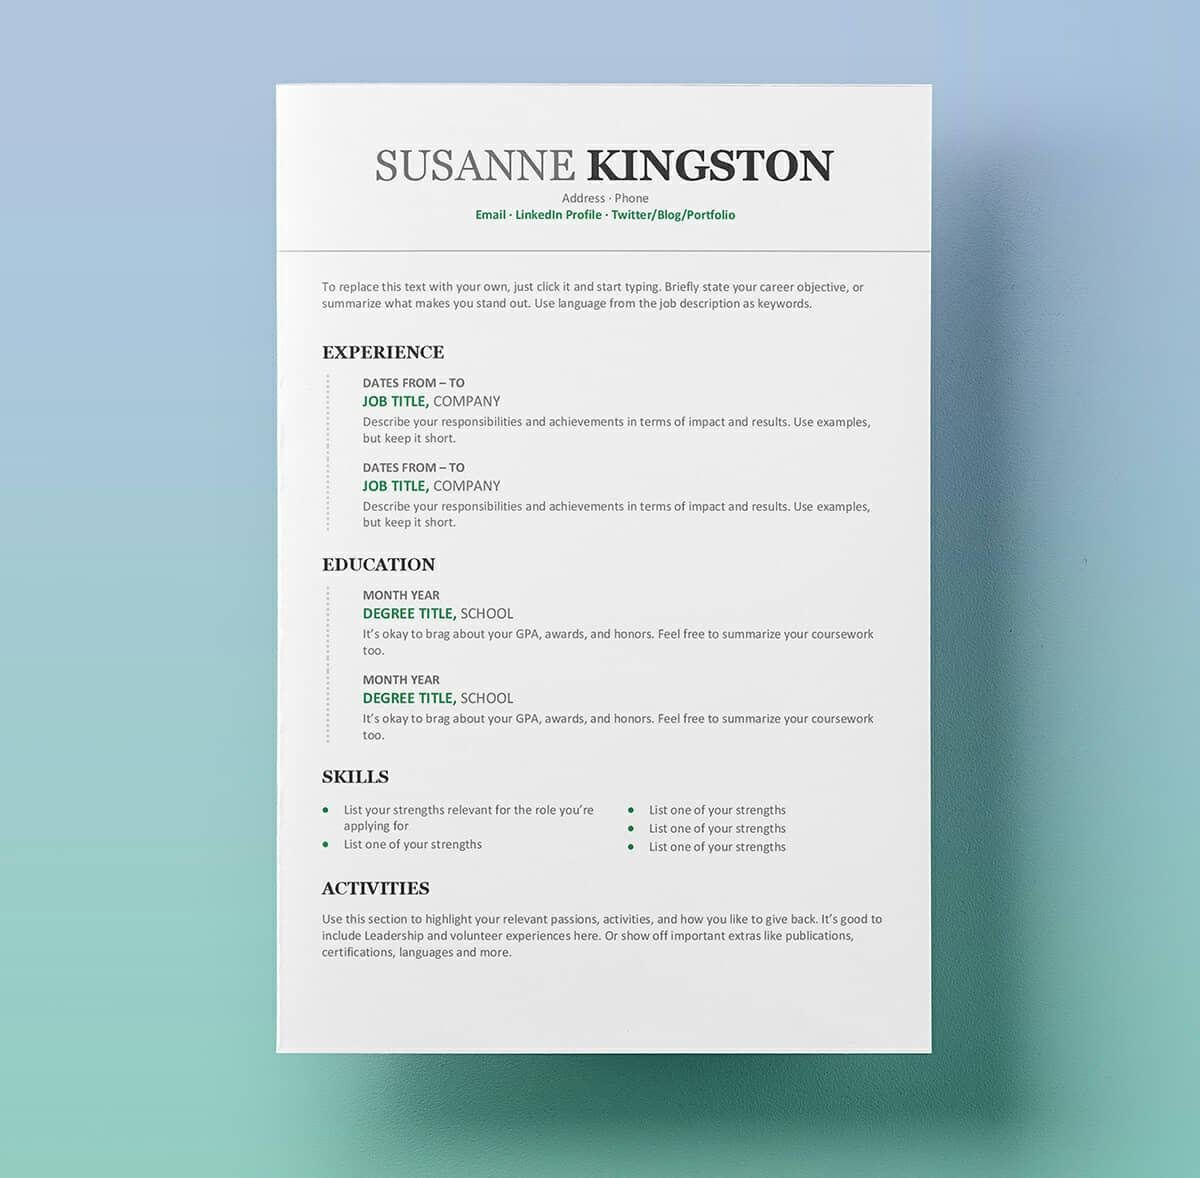 008 Marvelou Cool Resume Template For Word Free Image  Download Doc Best Format 2018Full